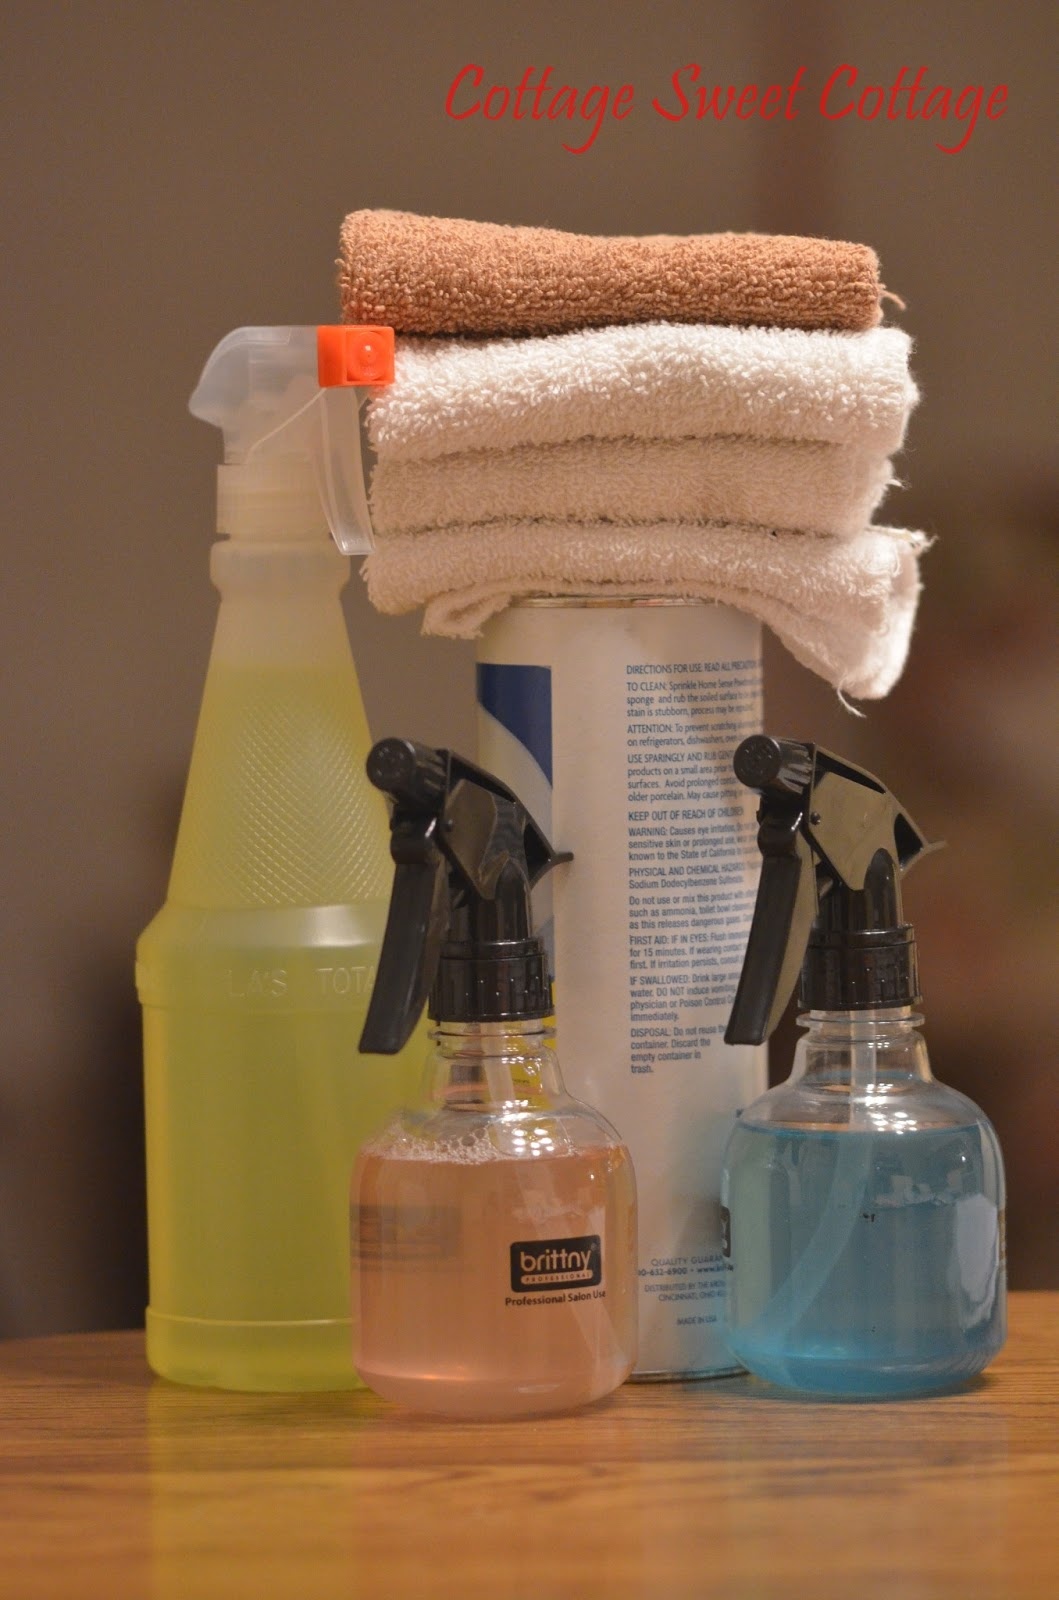 Cottage Sweet Cottage 5 Cleaning Supplies I Keep In My